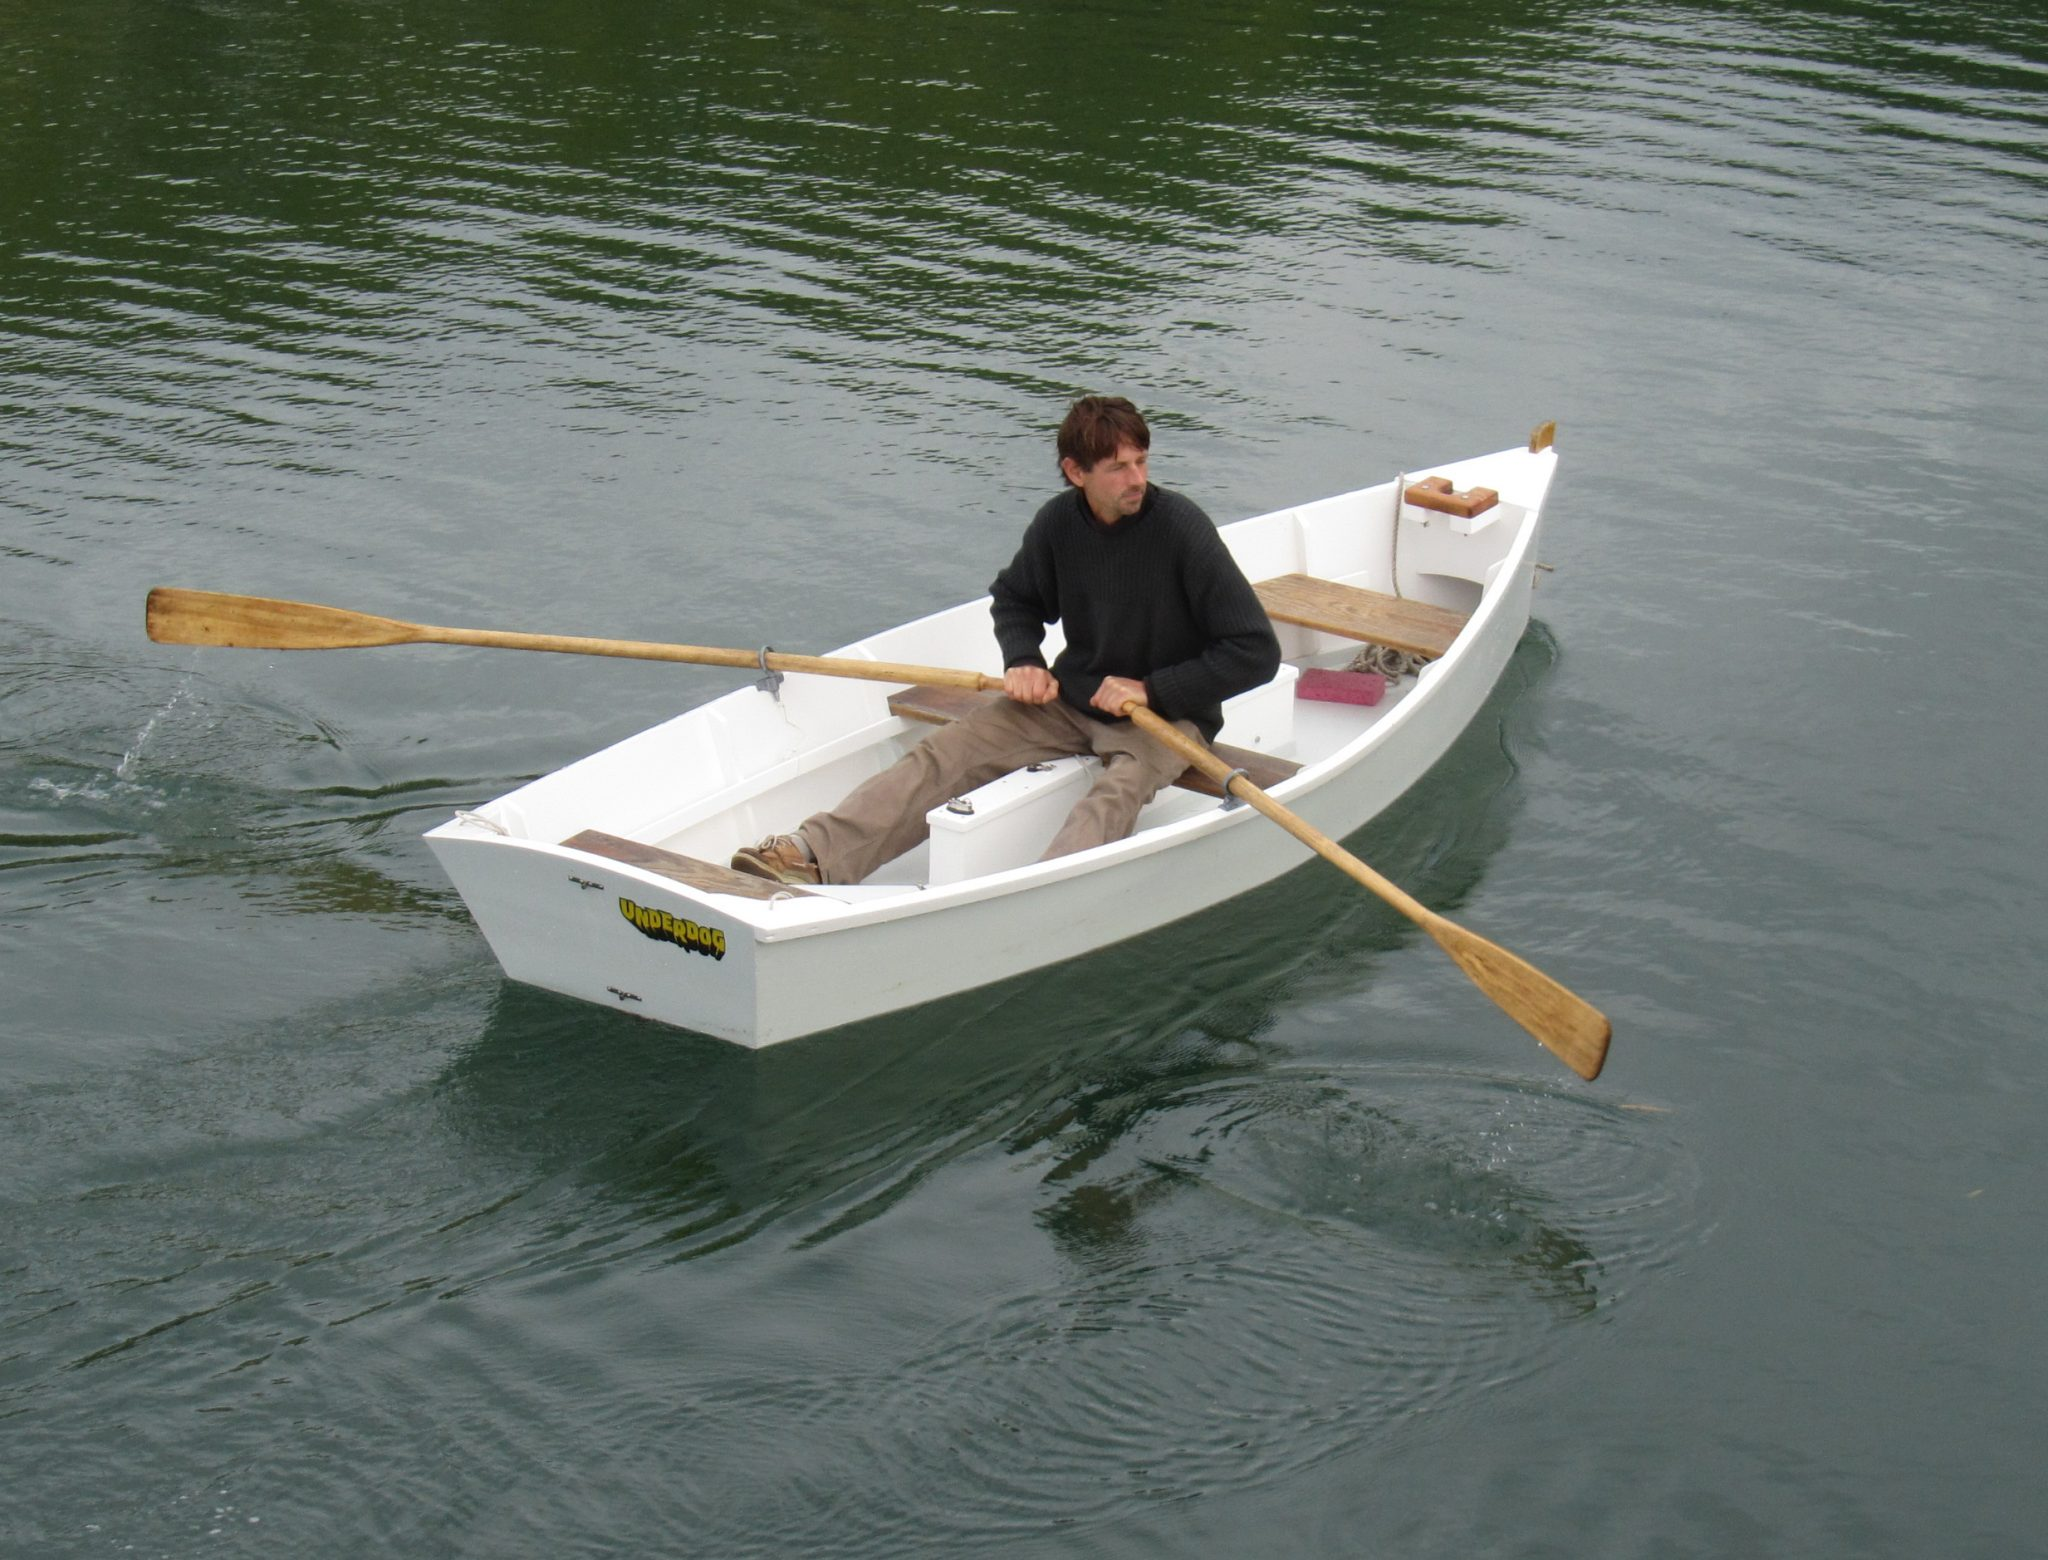 Bevin's Skiff (Fonte: Small Boats Monthly)